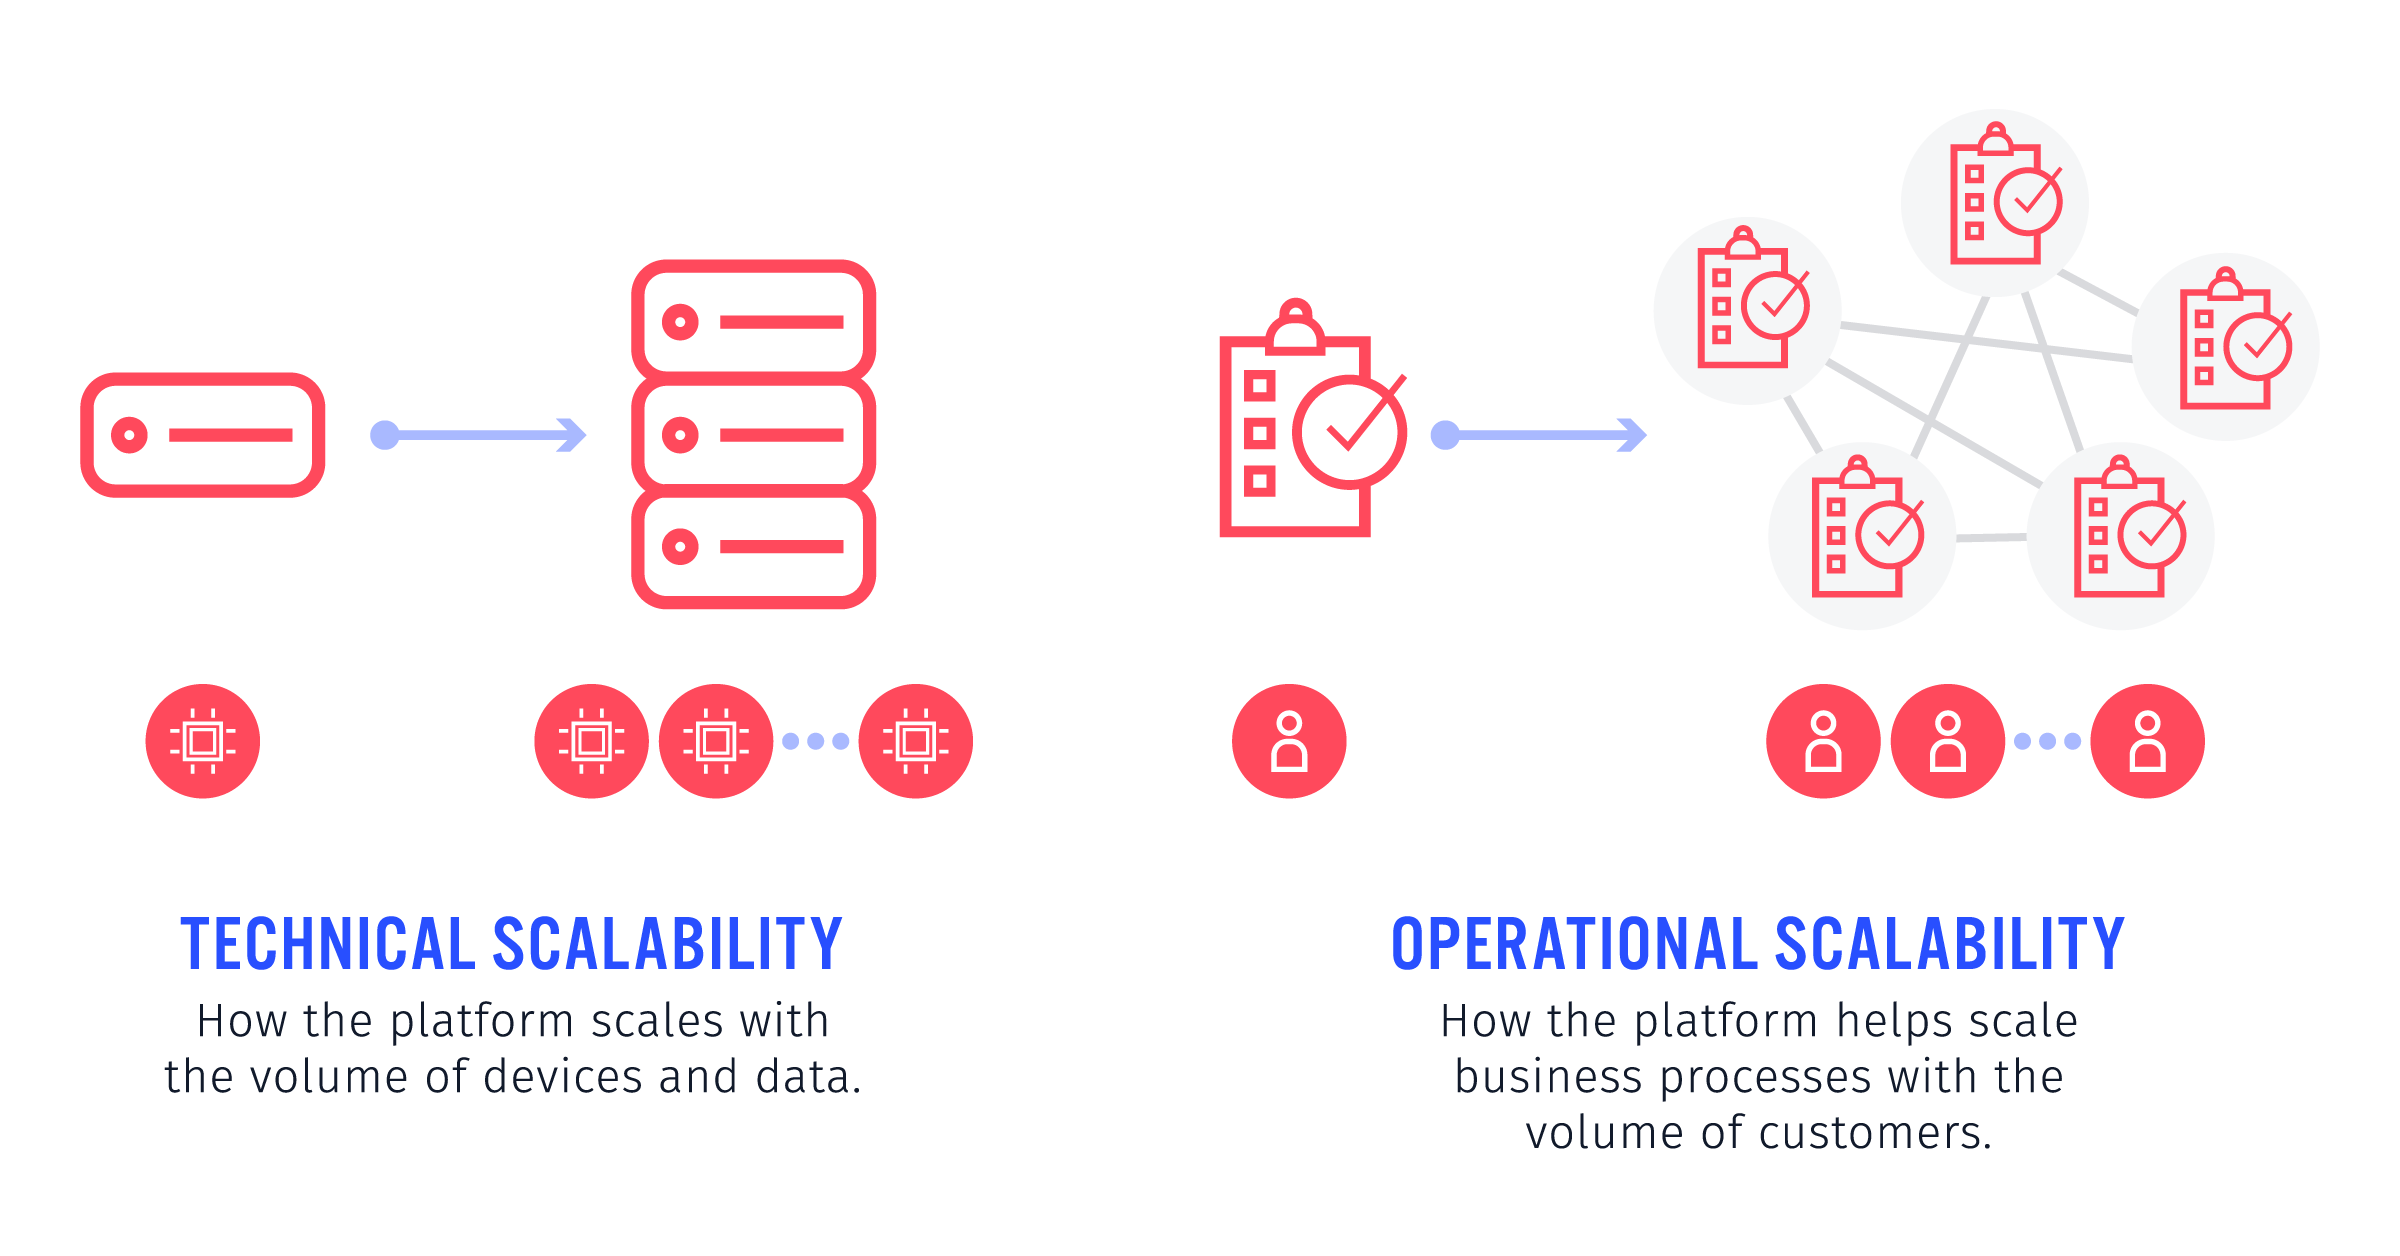 Architecture of an IoT Platform - Operational Scalability